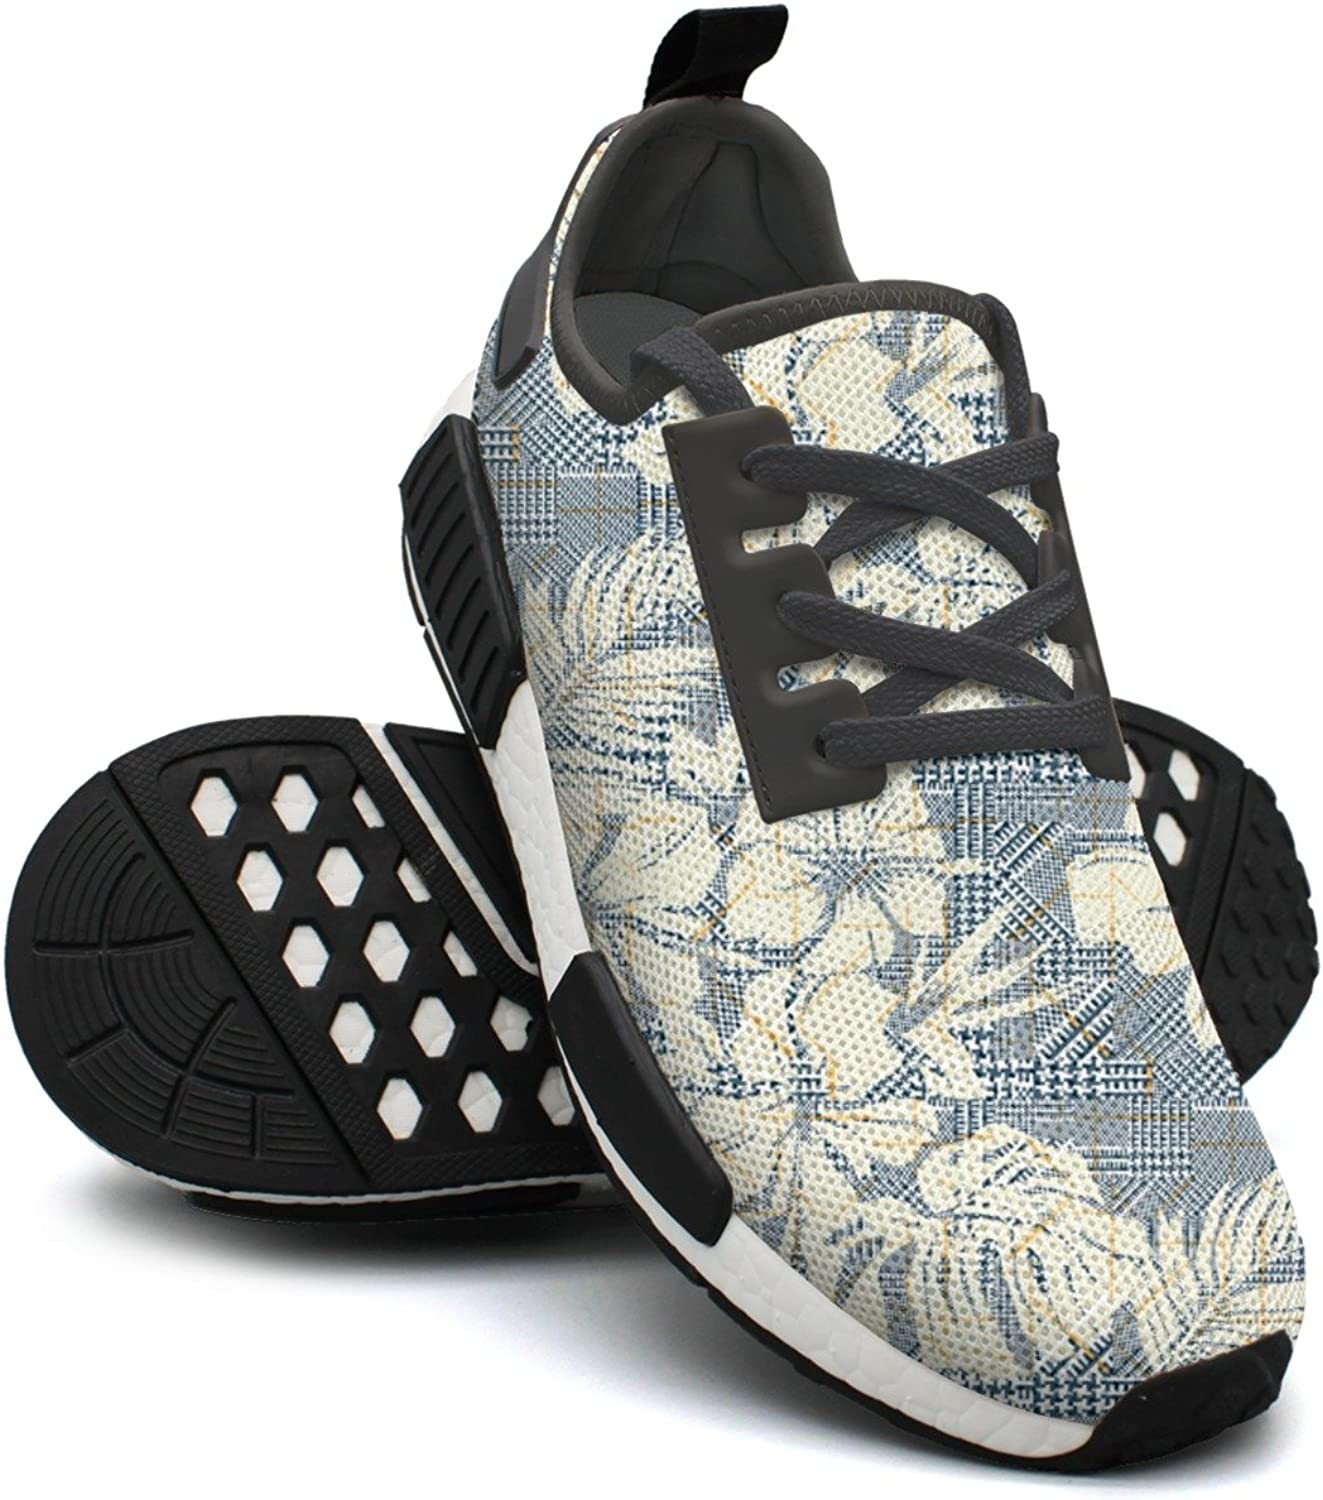 Houndstooth Plaid With Abstract Hibiscus Flowers Breathable Running shoes Womens Nmd Sports shoes Wide